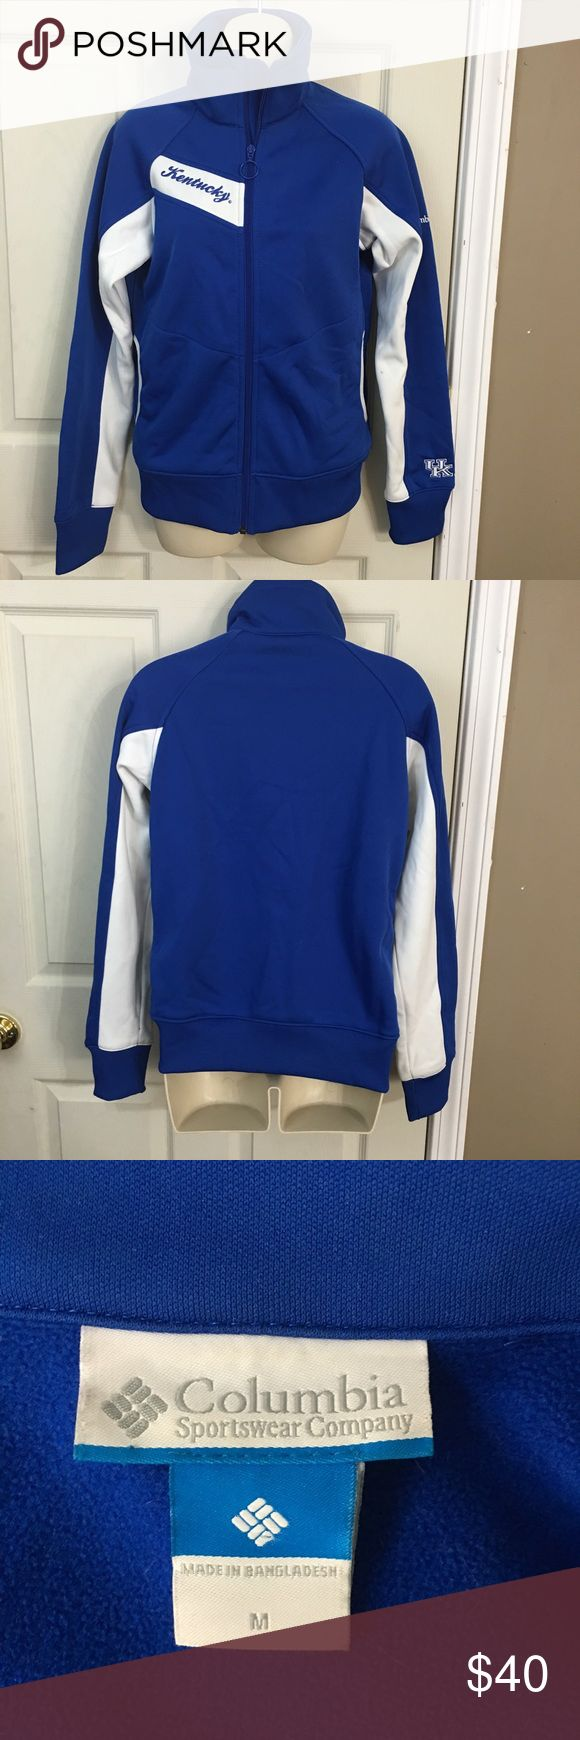 Columbia Sportswear UK Wildcats Jacket Size M This is a women's Columbia Sportswear University Of Kentucky Wildcats jacket size Medium. This jacket is in excellent gently used condition. It does have one very small spot on the left arm that should be able to be cleaned off. Please take a look at all photos for condition and if you have any questions feel free to ask. Columbia Jackets & Coats Utility Jackets